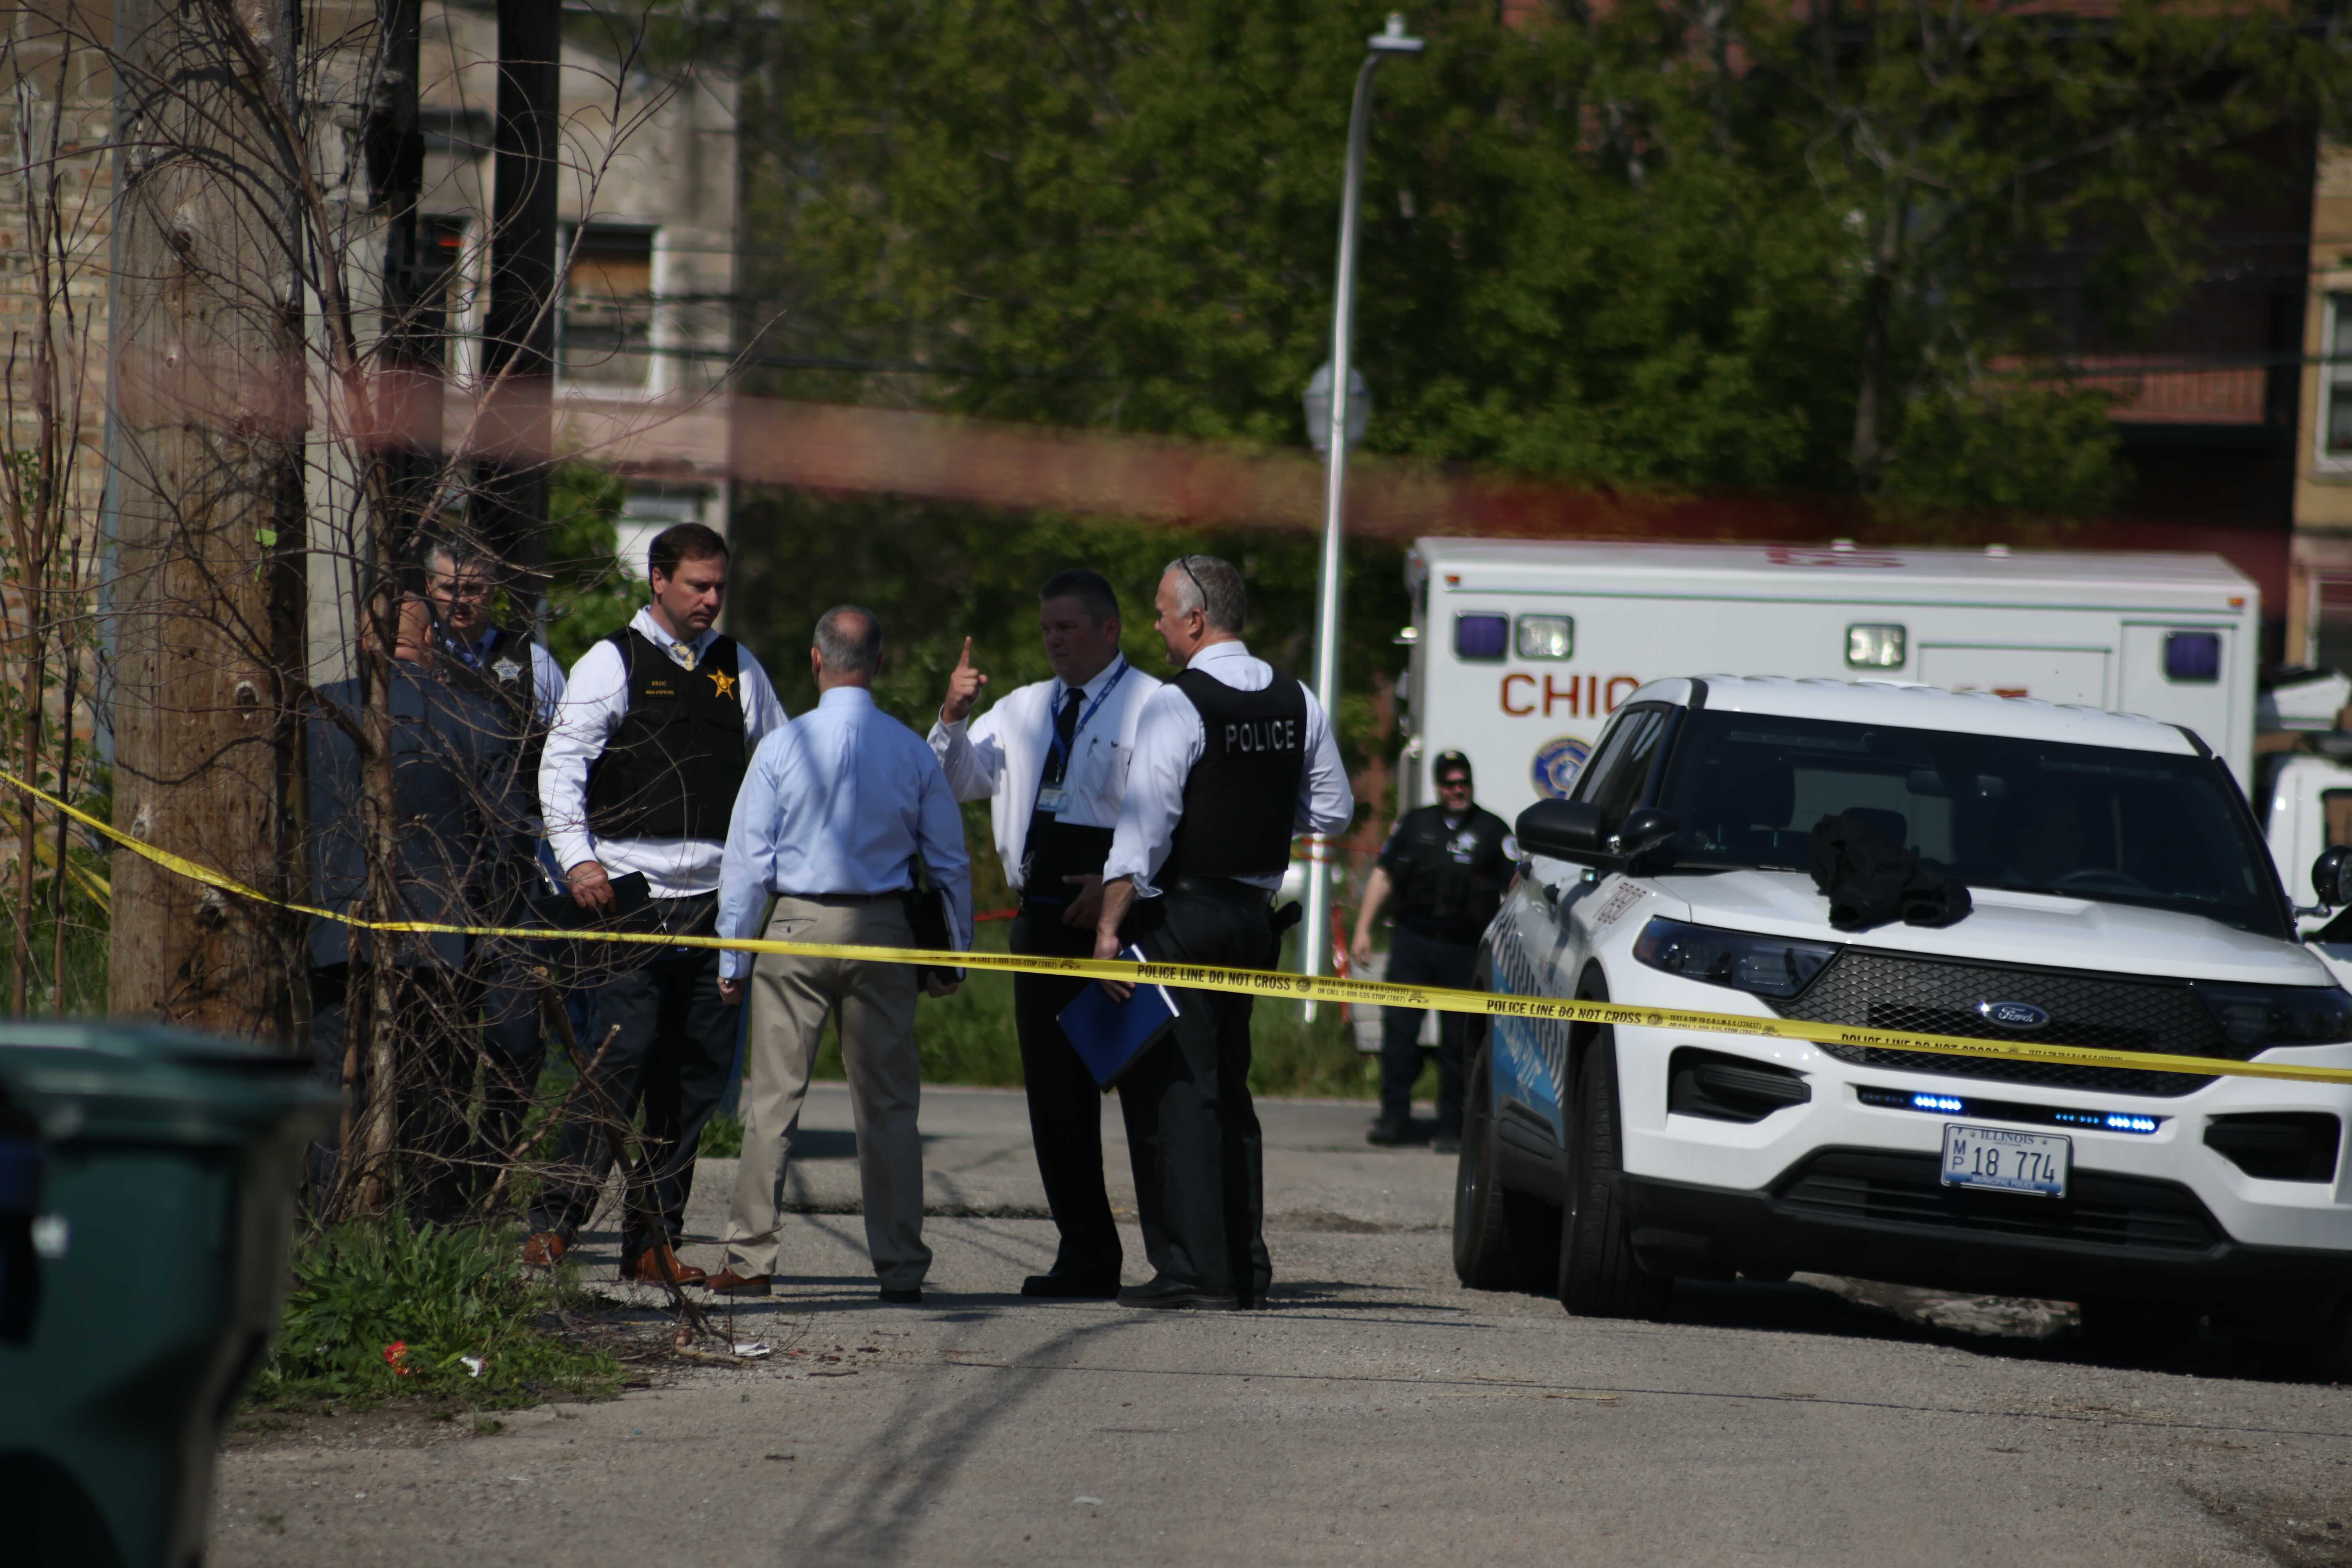 Chicago police investigate the scene where two officers were shot May 16, 2021, in Lawndale.